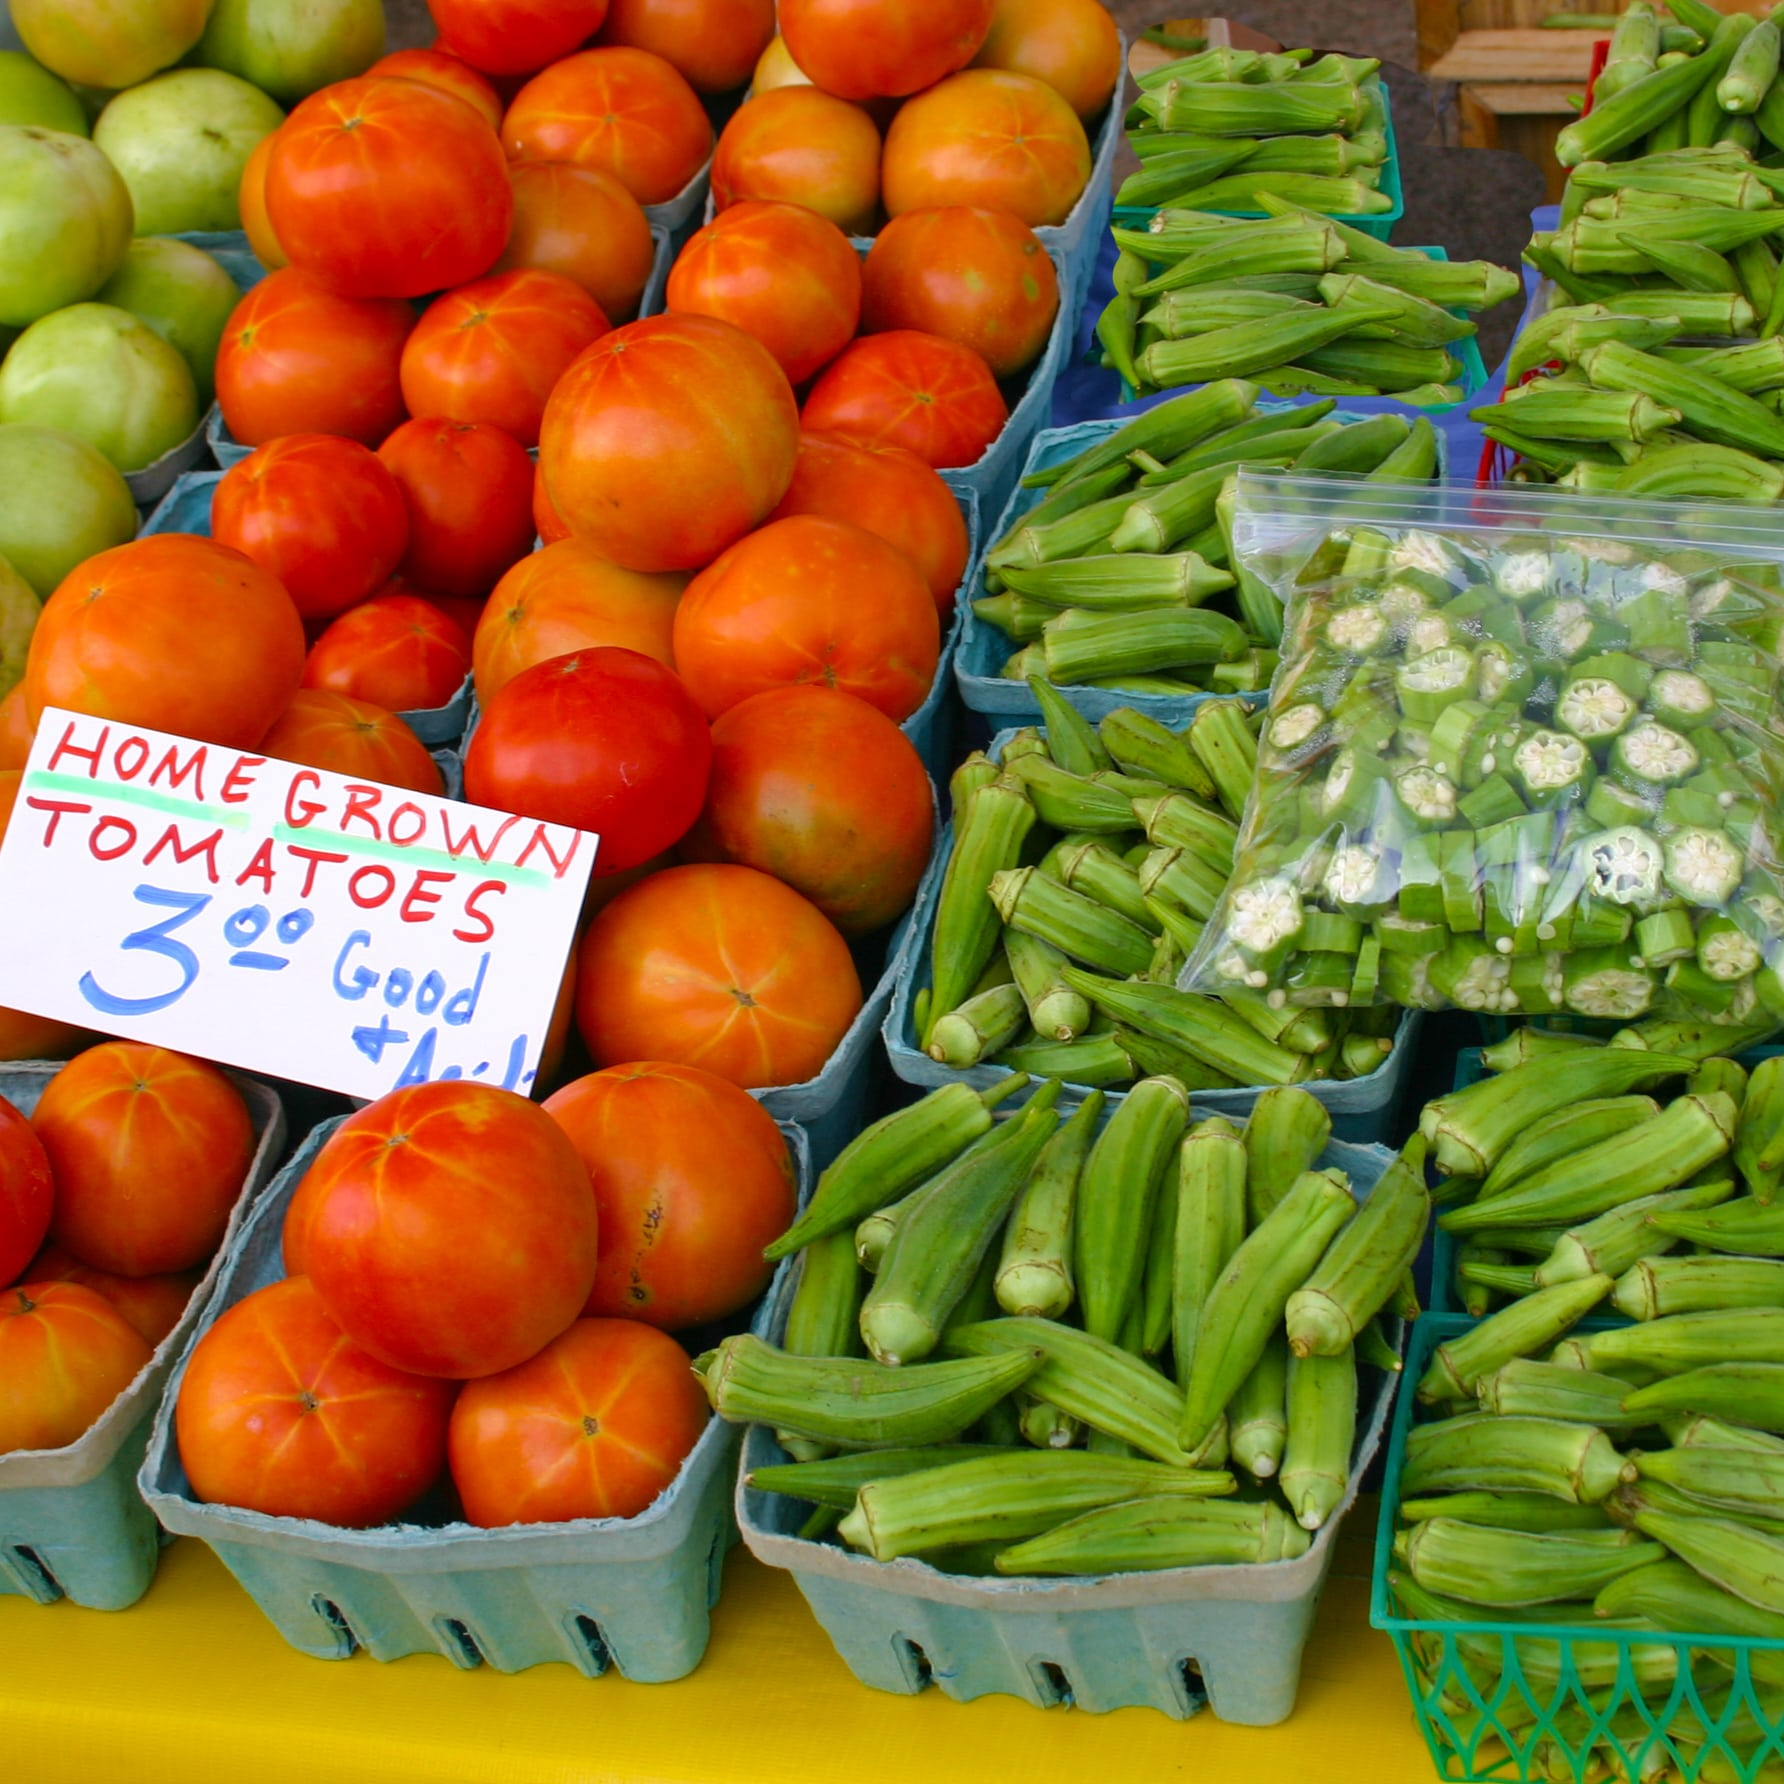 fresh tomatoes and okra in baskets for sale at a fresh vegetable stand